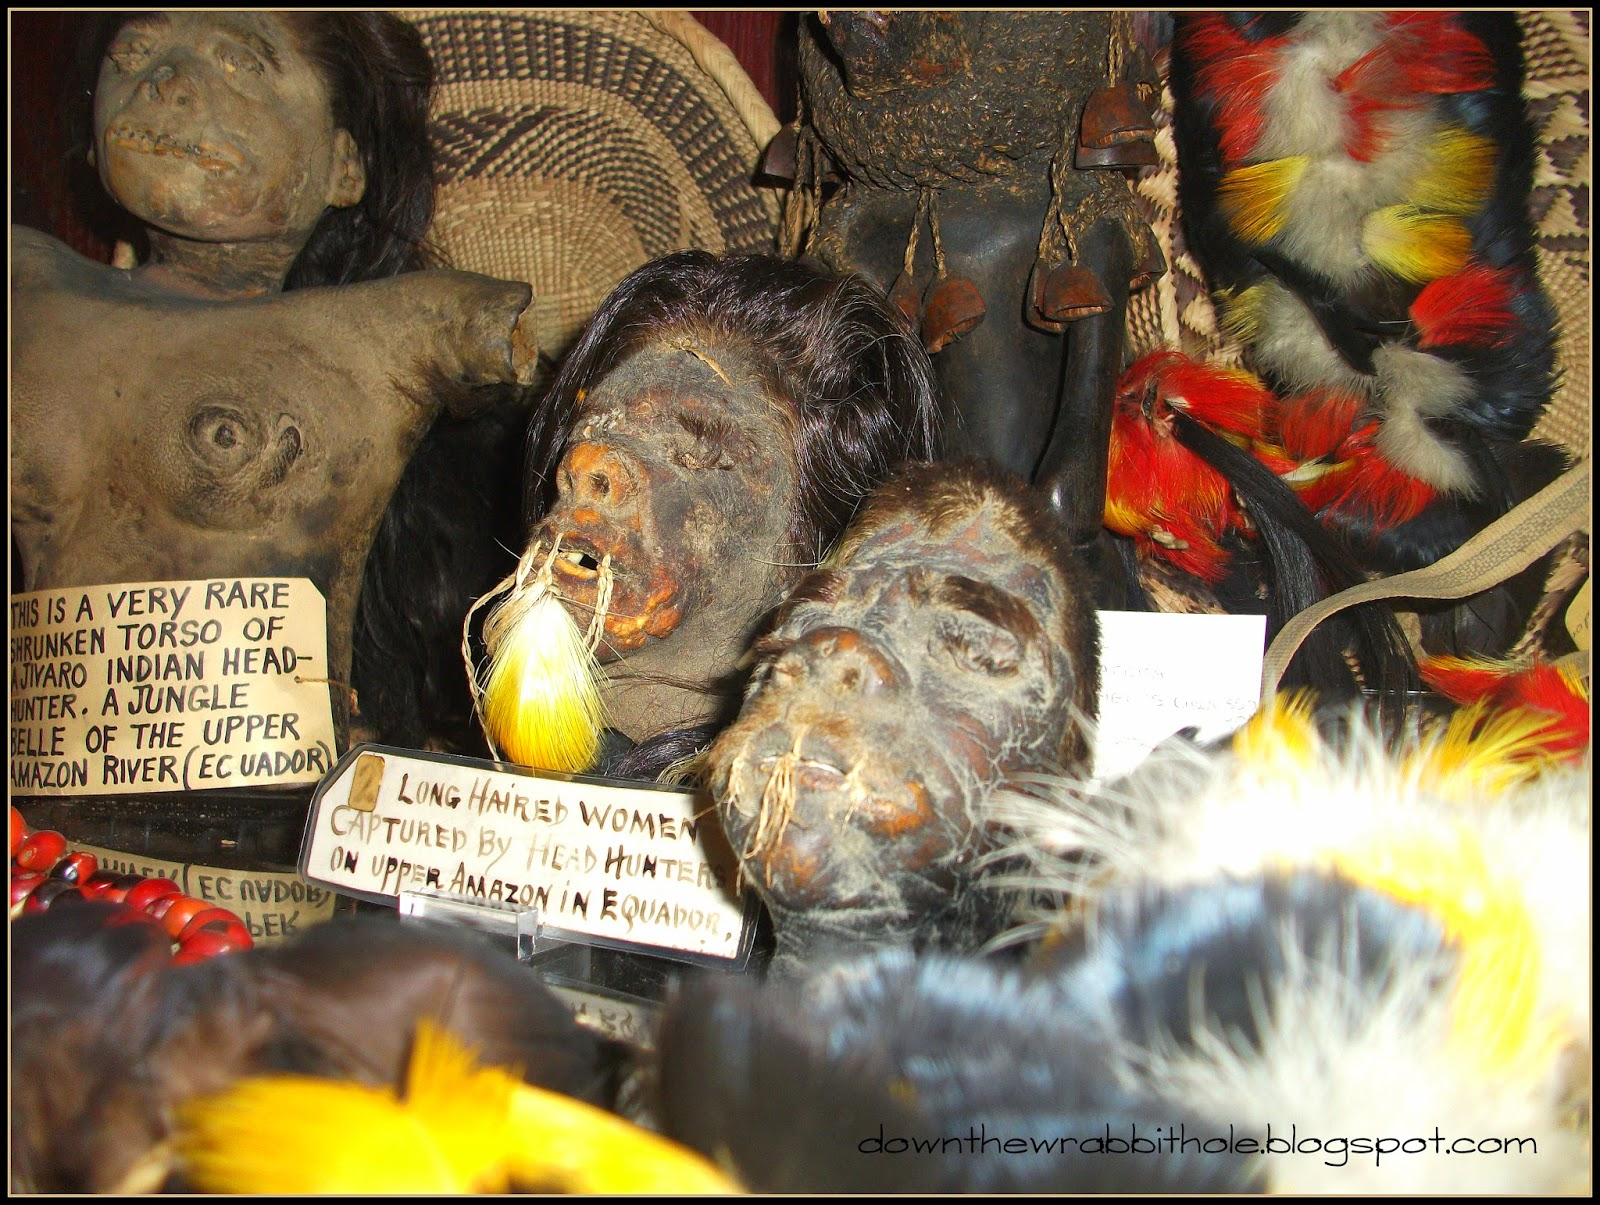 Seattle curiosity shop shrunken heads